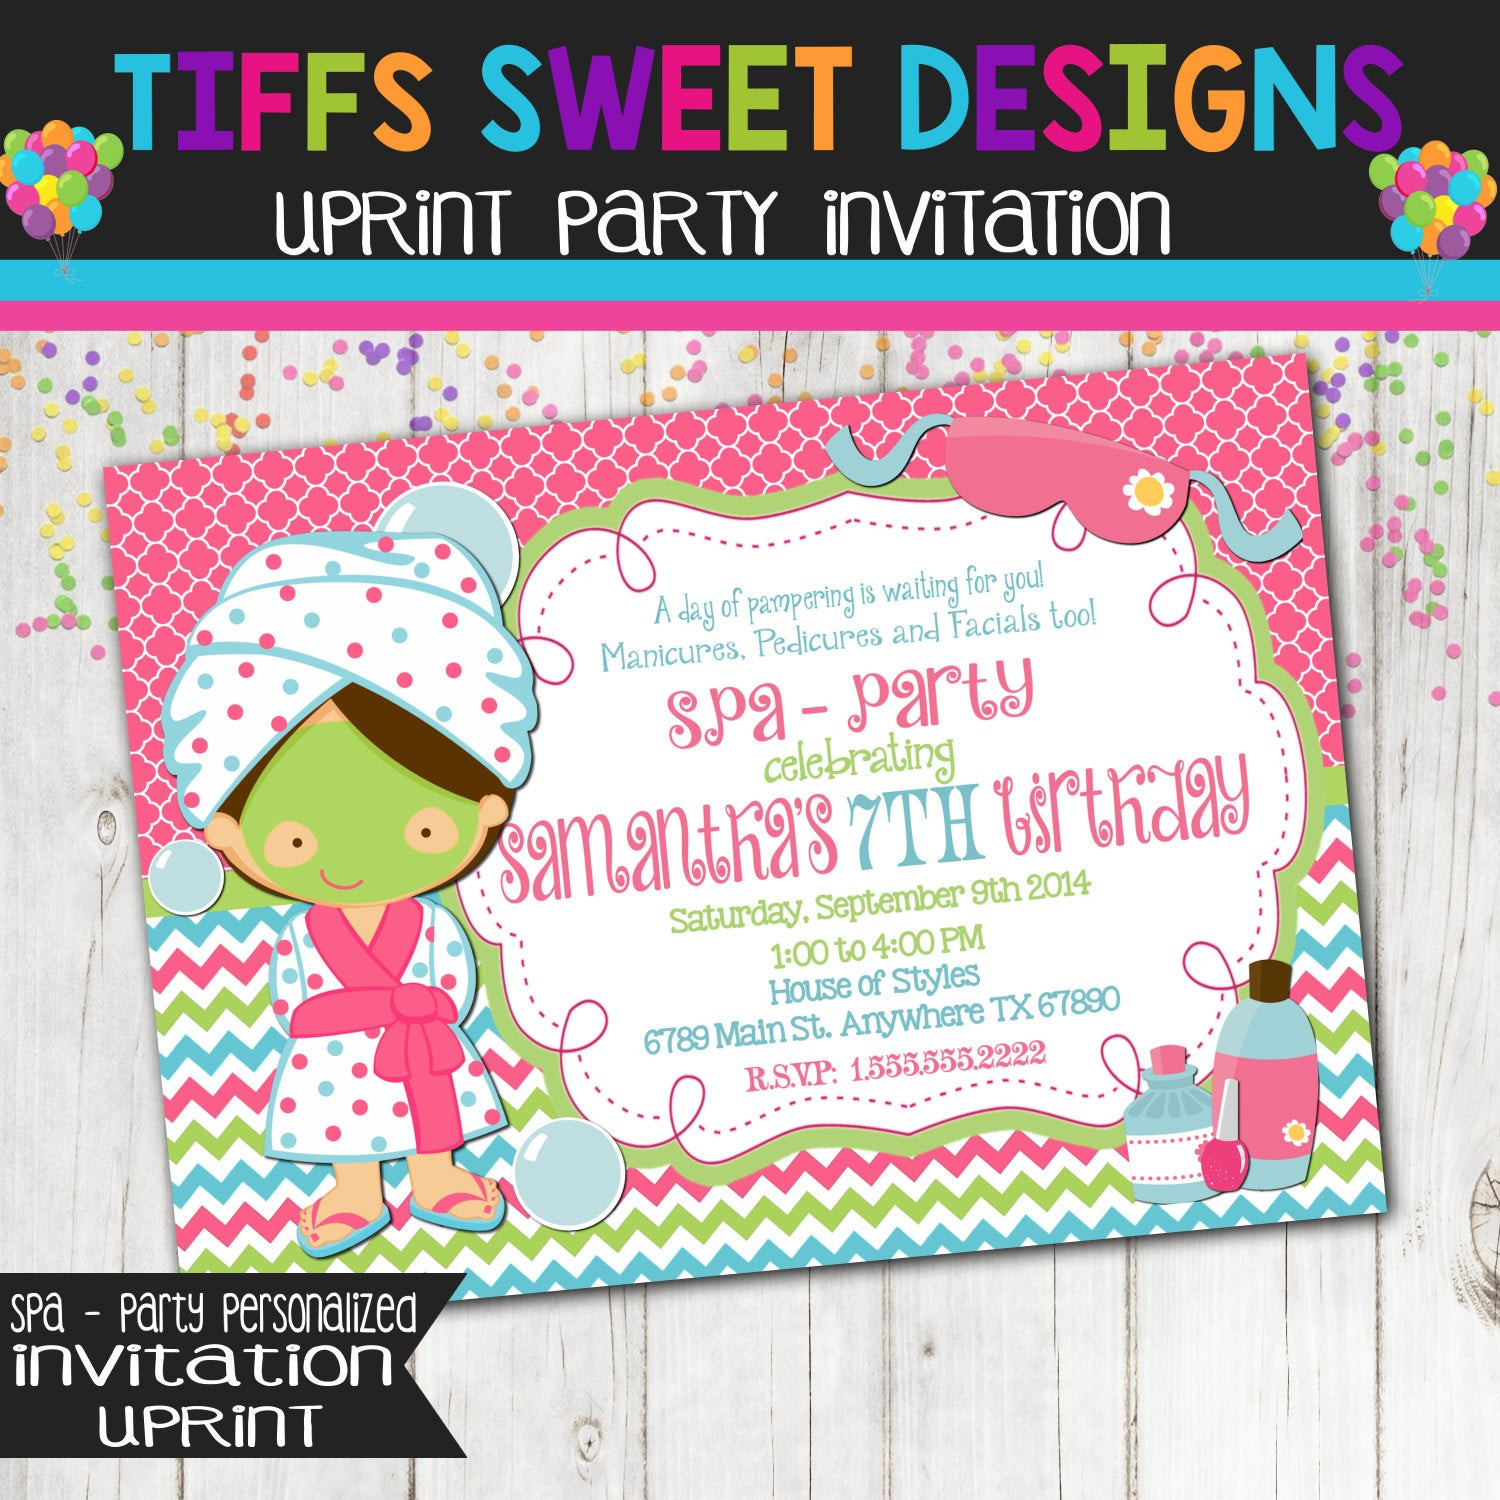 Best ideas about Spa Birthday Invitations . Save or Pin Spa Party Invitation Spa Party Birthday Girls Birthday Now.